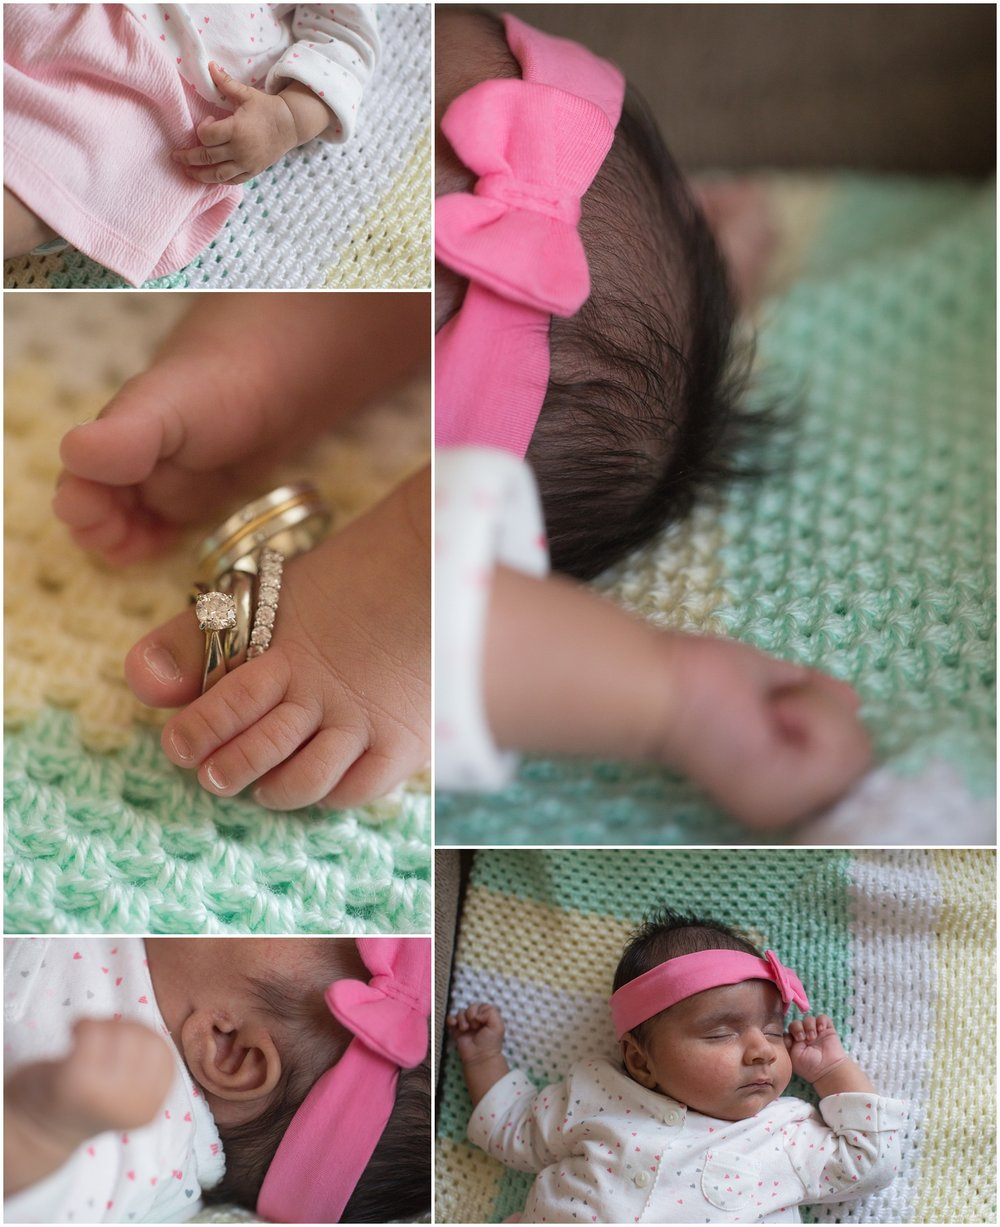 Amazing Day Photographer - Langley Newborn Photographer - Lifestyle Newborn Photographer (3).jpg